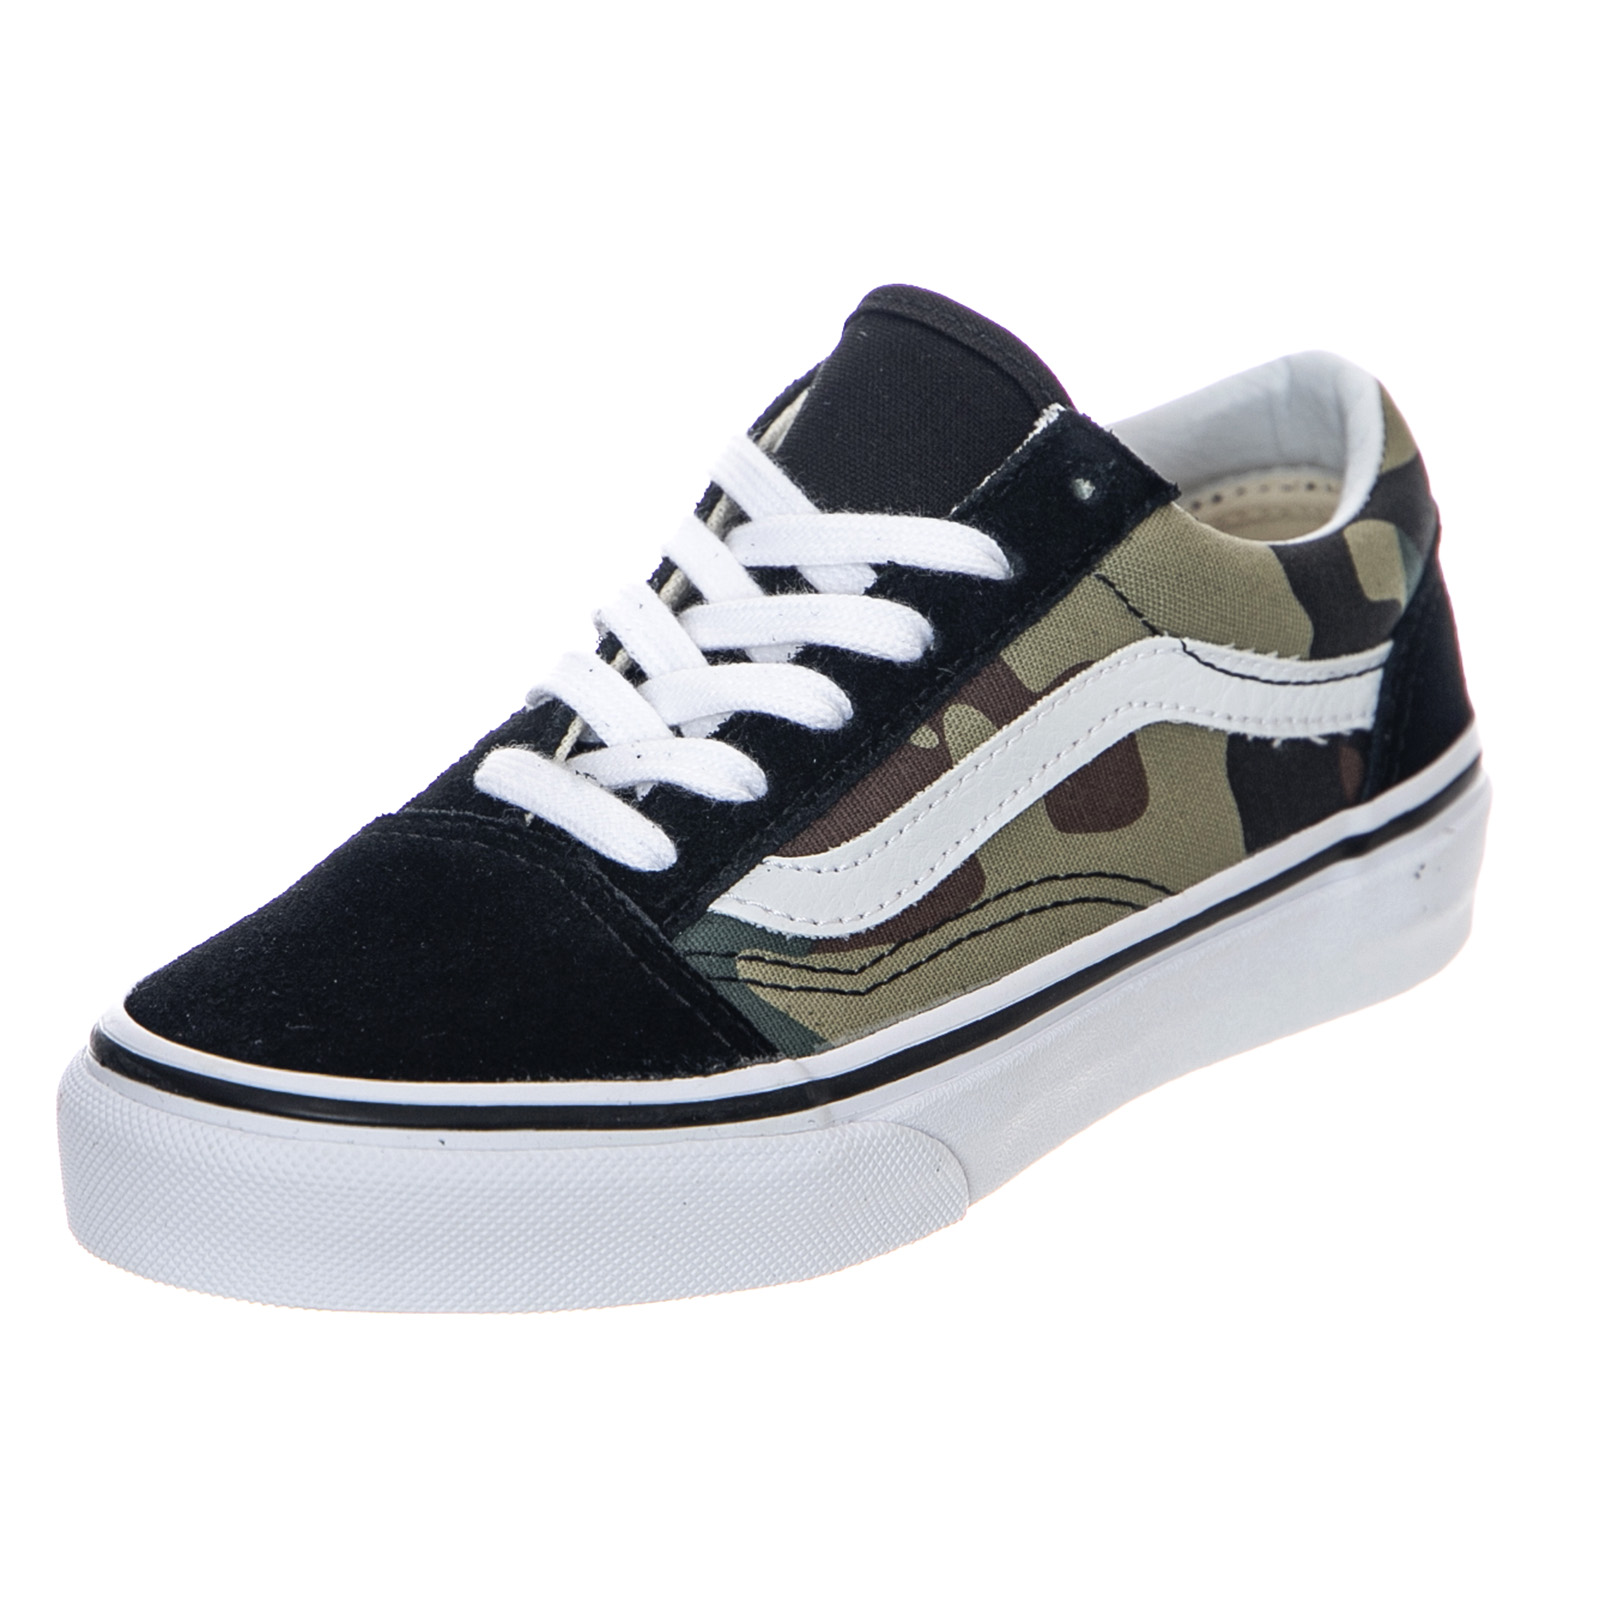 b1657ec6 Details about Vans Uy Old Skool - Woodland Camo - Sneakers Low Child Camo